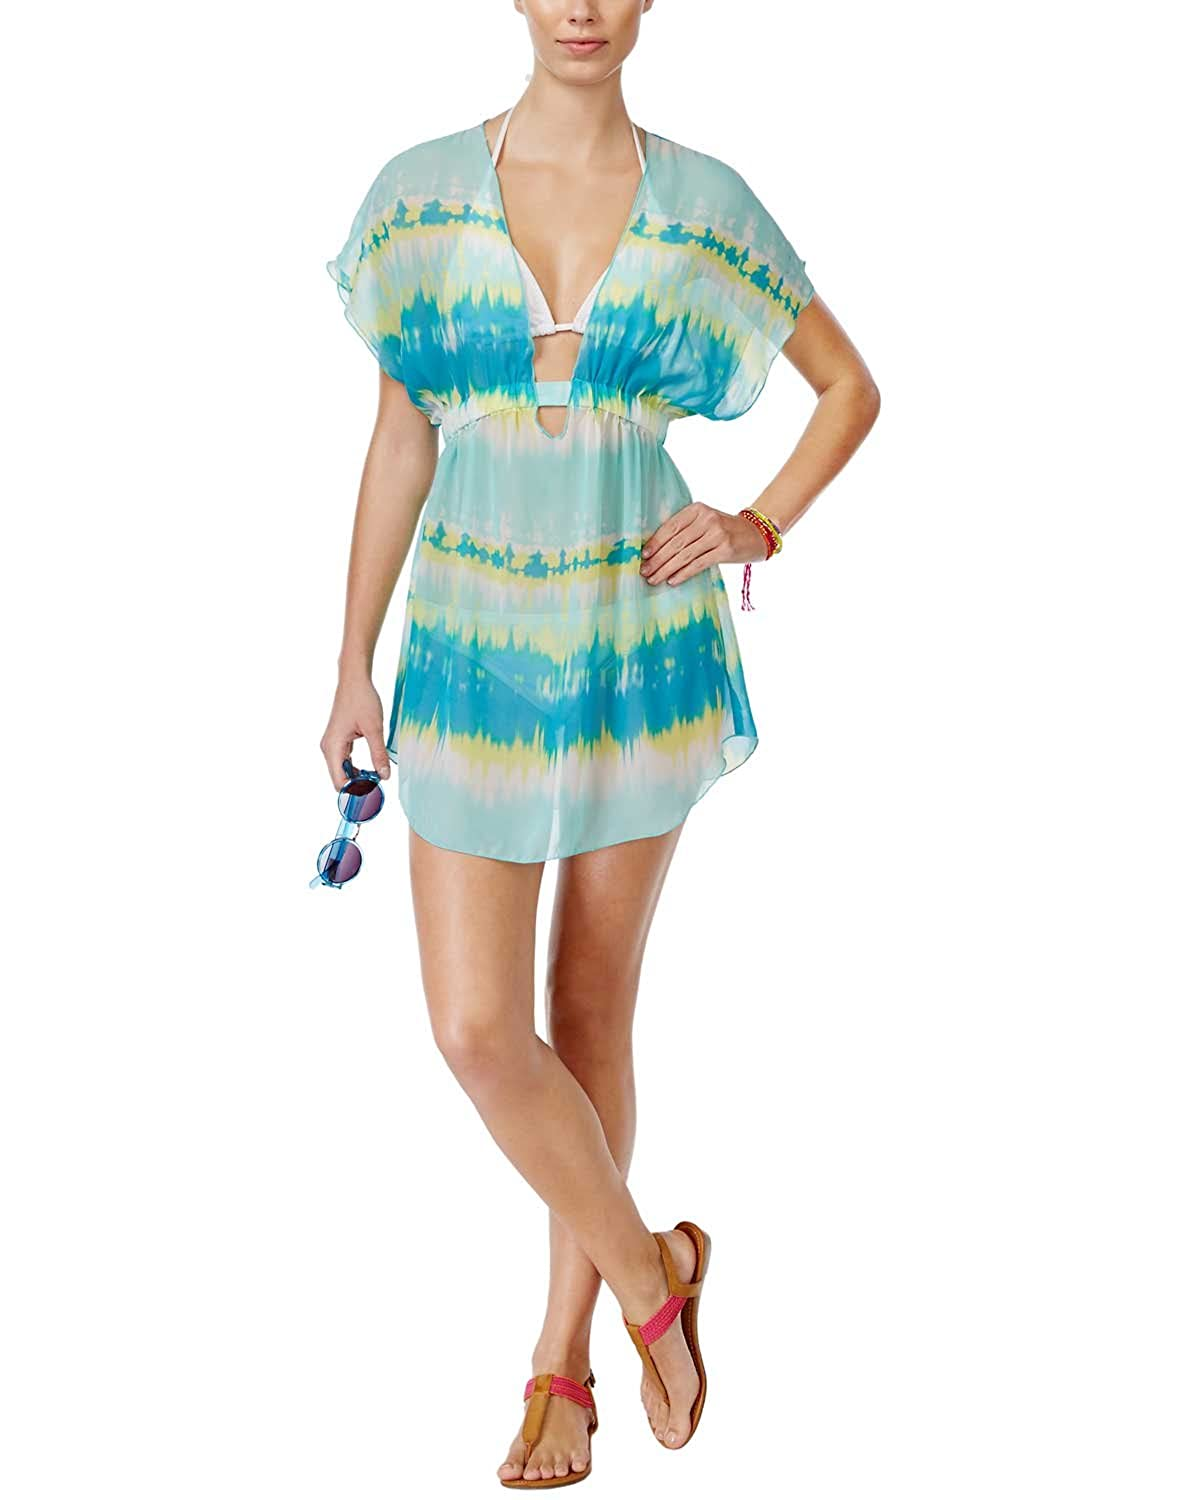 5493bf8592 Miken Smocked Tie-Dye Sheer Cover-Up Junior's Swimsuit, Mermaid Aqua ...